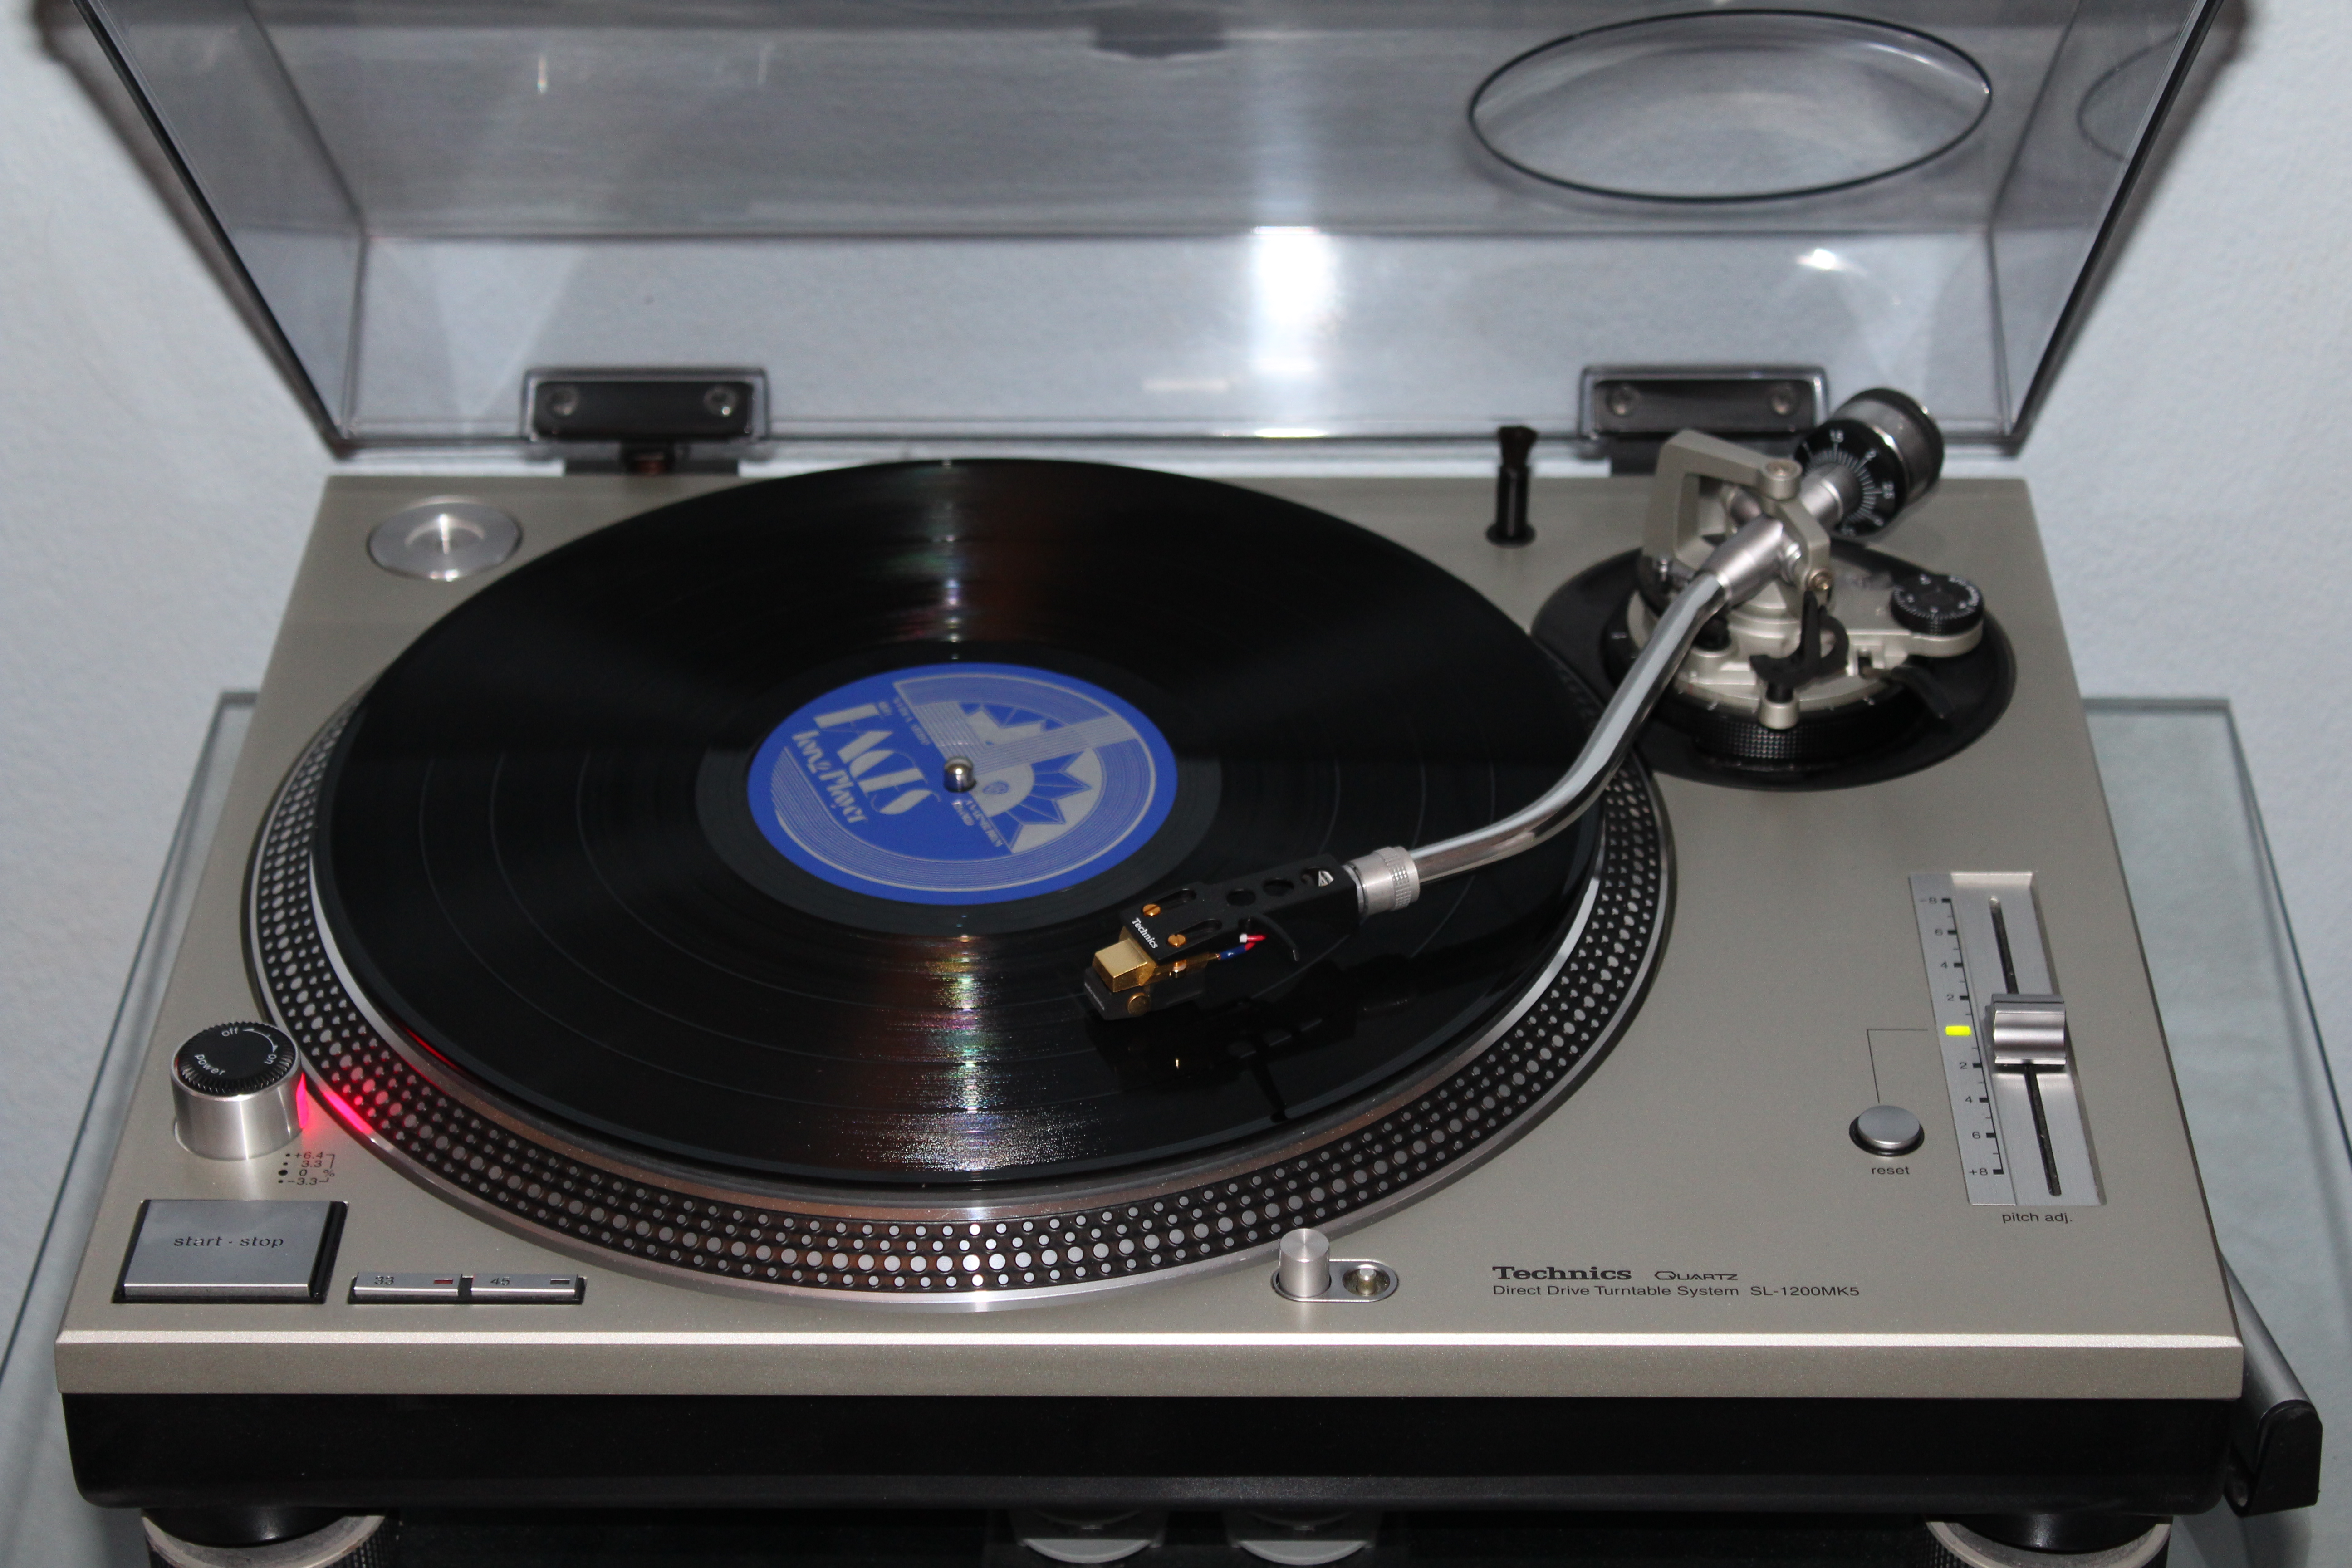 Technics sl-1210 mk5g 30th anniversary edition.